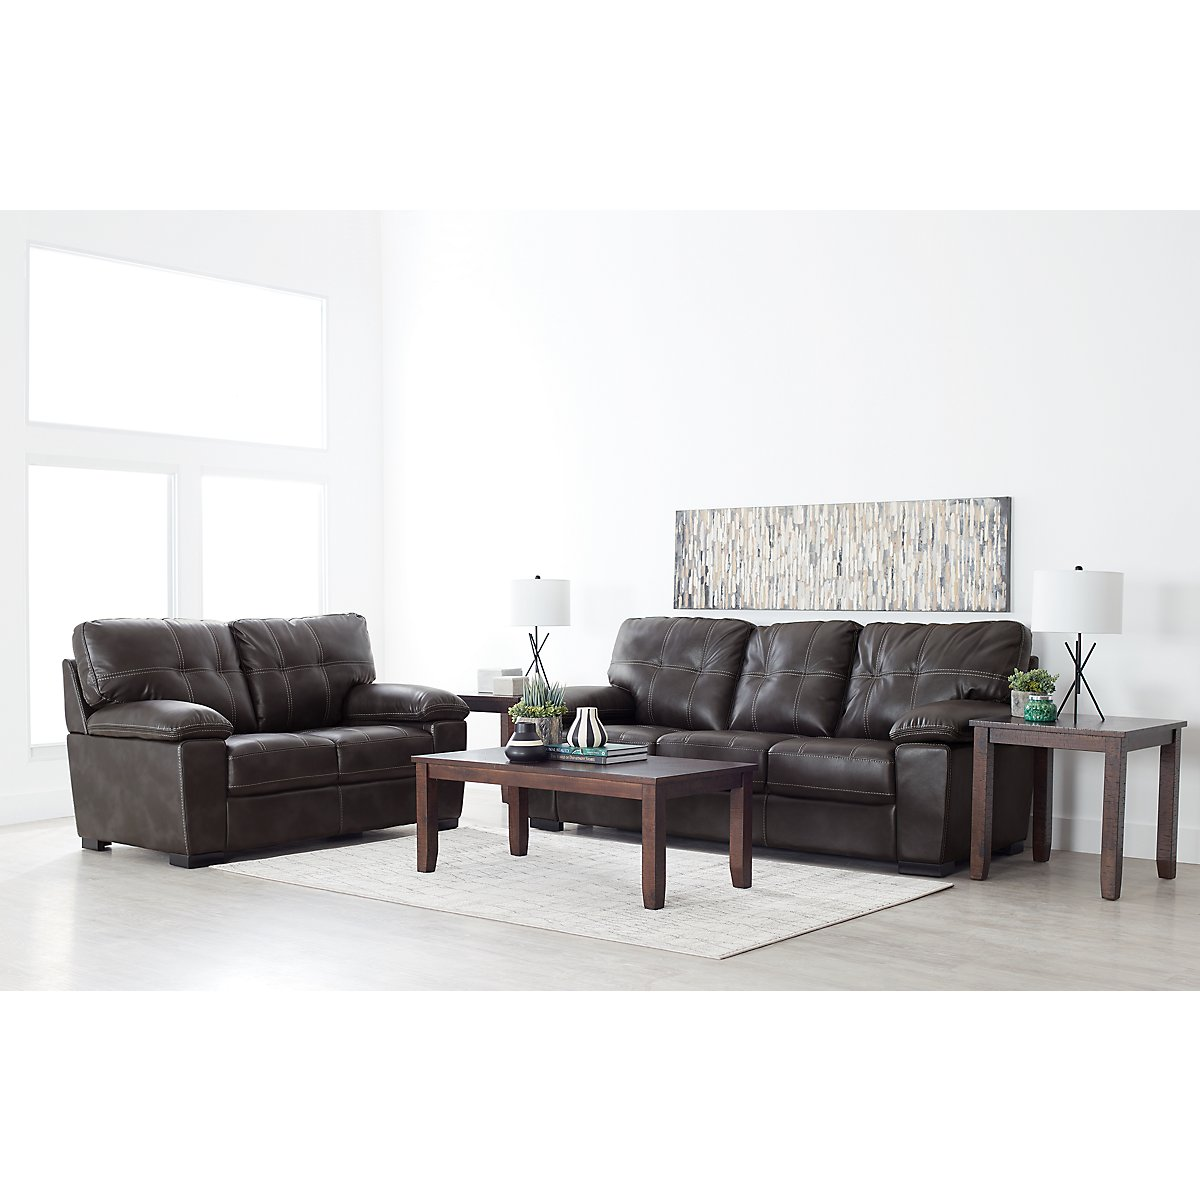 City Furniture: Henry Gray Microfiber 7-Piece Living Room Package